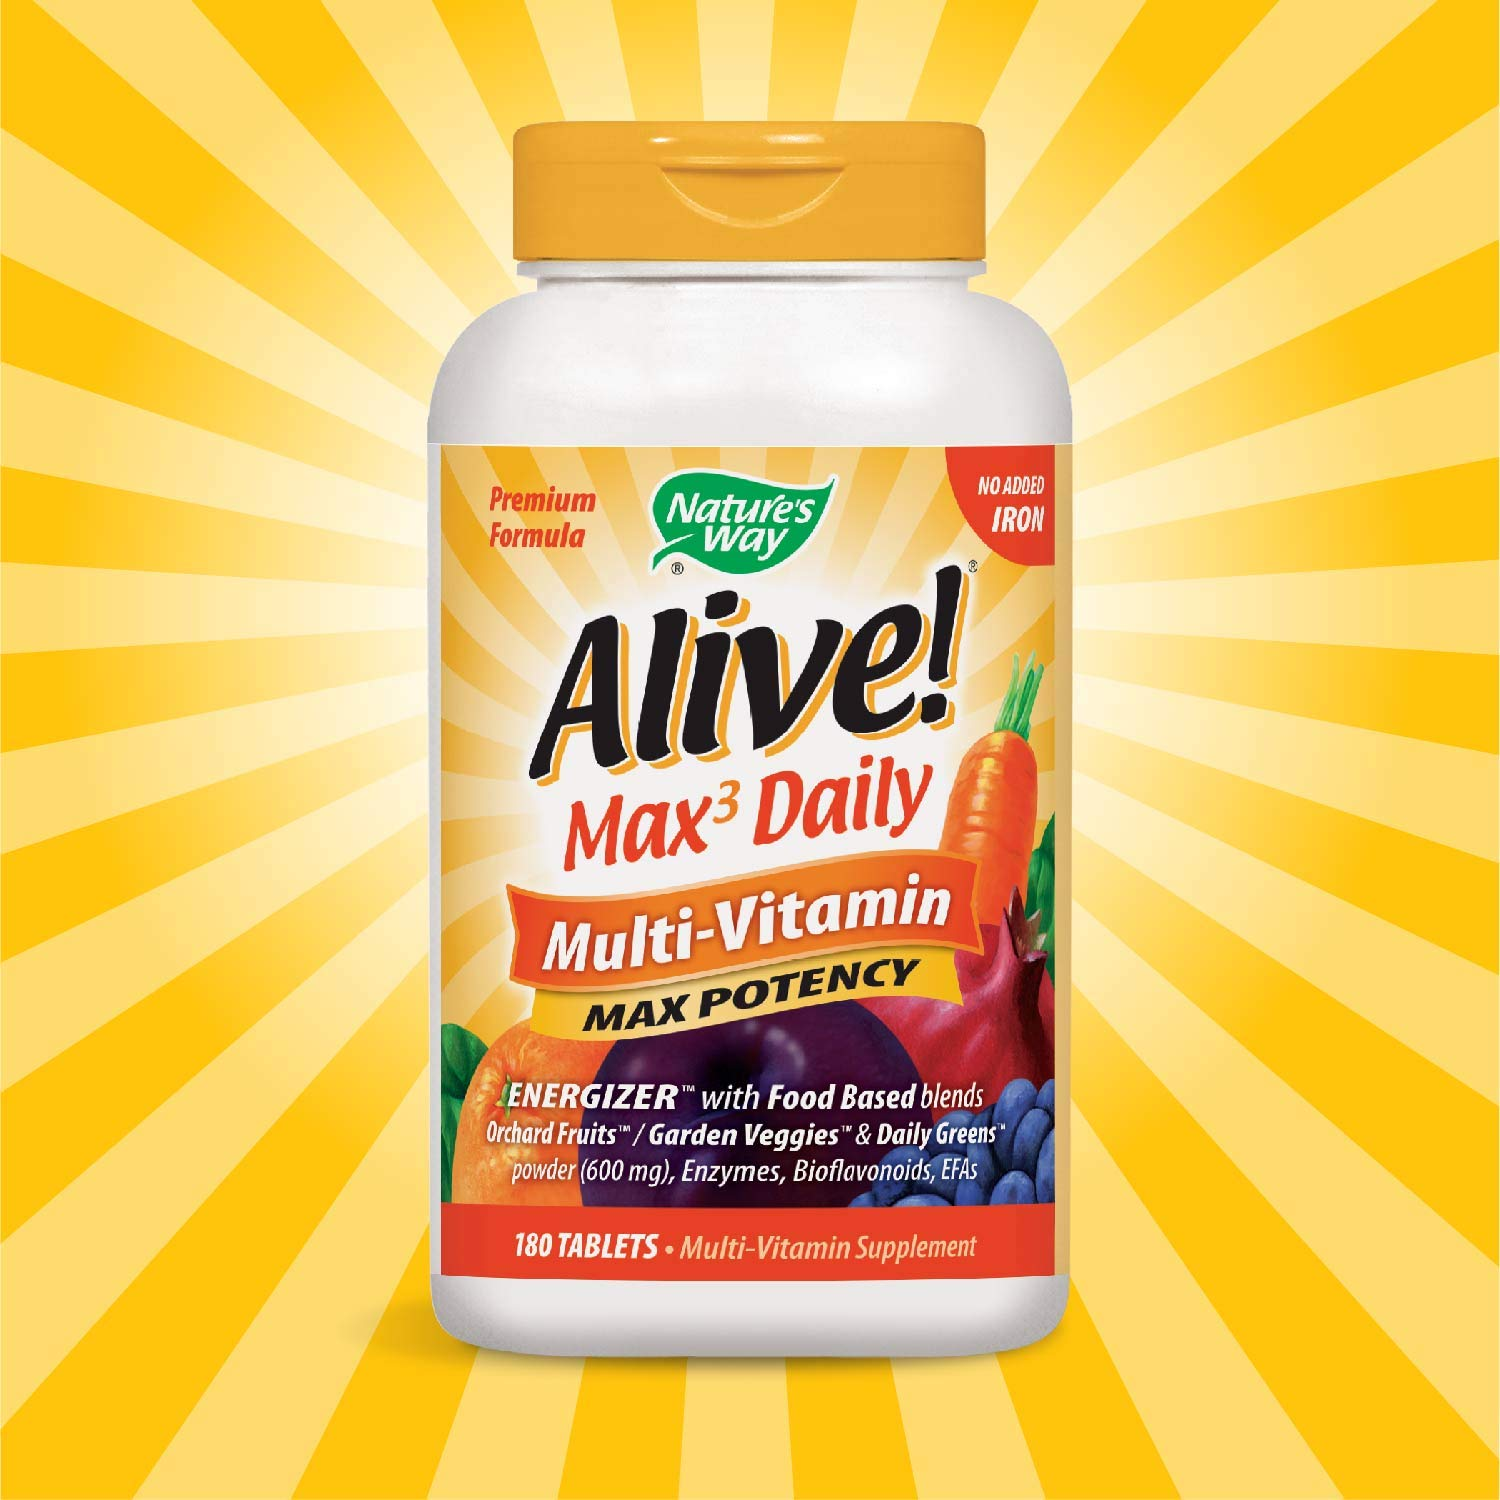 Nature s Way Alive Max3 Daily Adult Multivitamin, Food-Based Blends 1,060mg per Serving and Antioxidants, No Iron Added, 180 Tablets